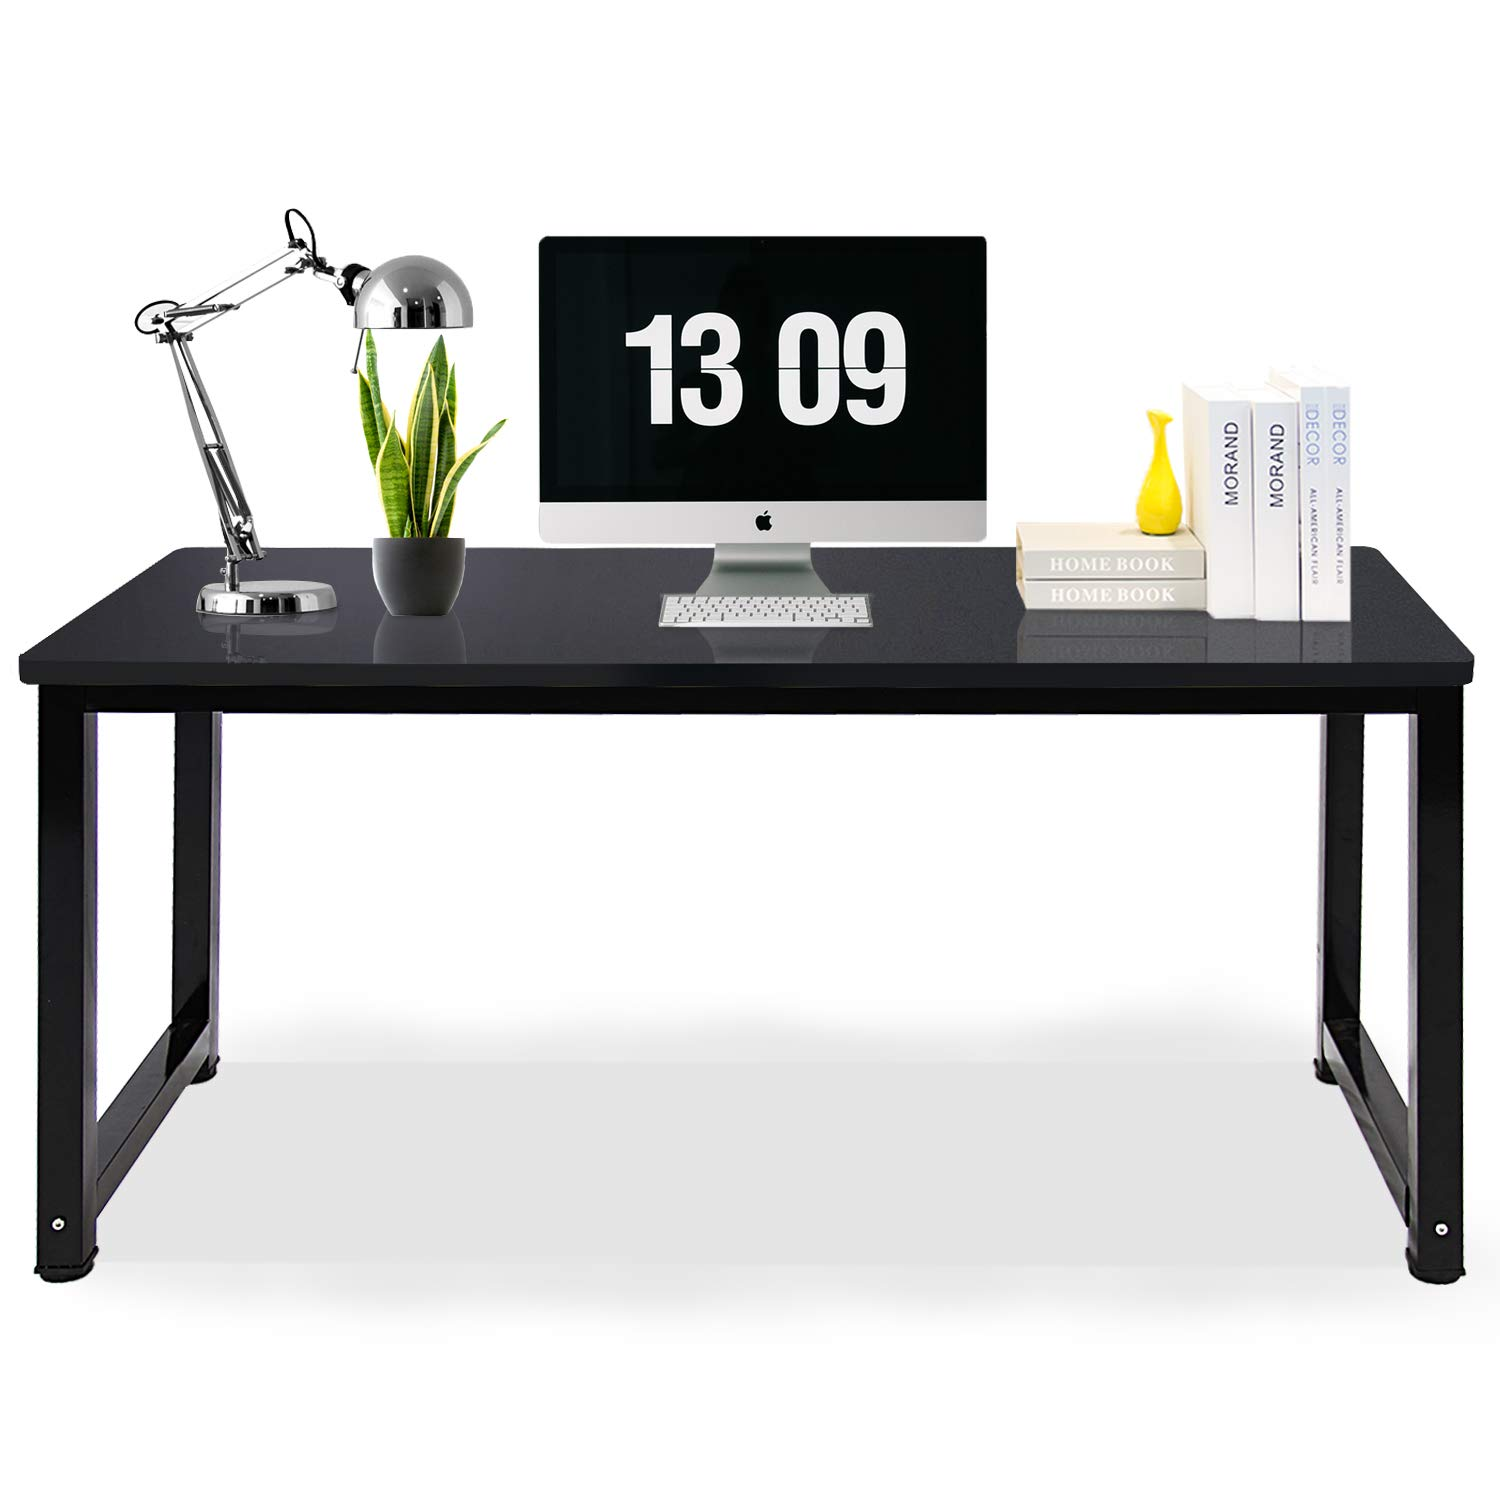 Jerry & Maggie - Professional Office Desk Wood & Steel Table Modern Plain Lap Desk with Rectangular Legs Computer Desk Personal Working Space - Black   Length 47.3'' by Jerry & Maggie